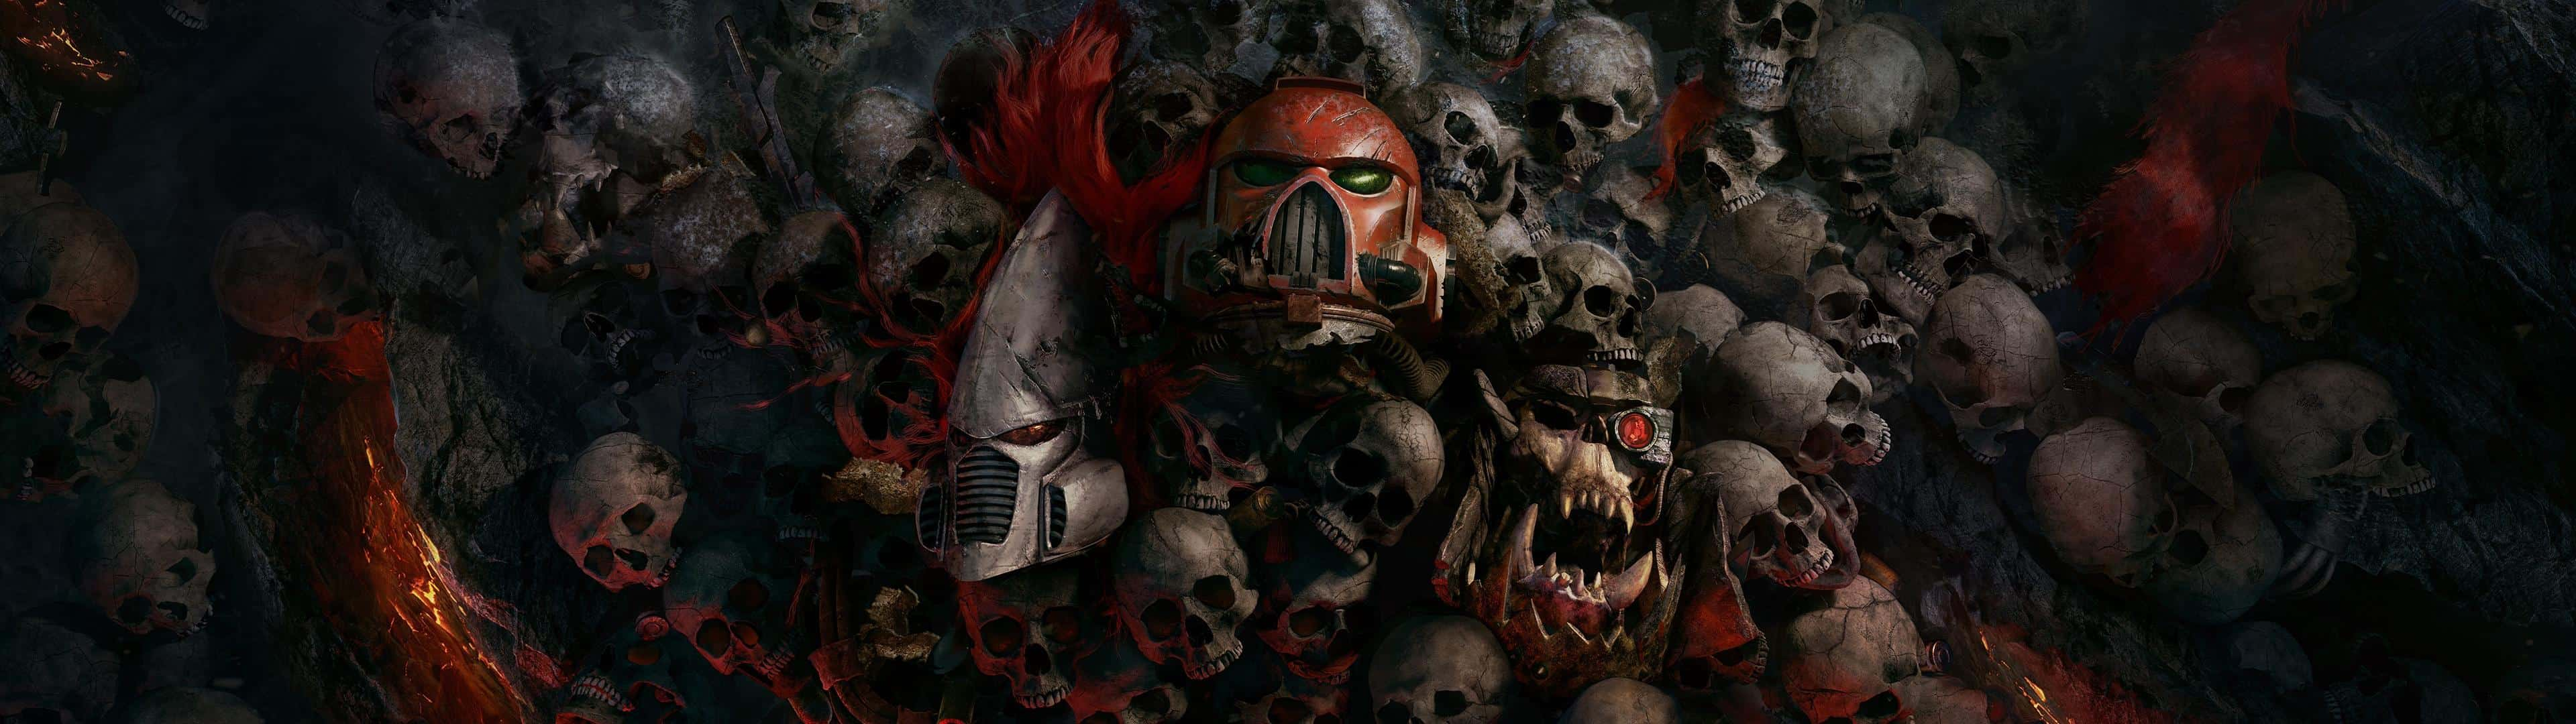 Warhammer 40k Dawn Of War 3 Skulls Dual Monitor Wallpaper